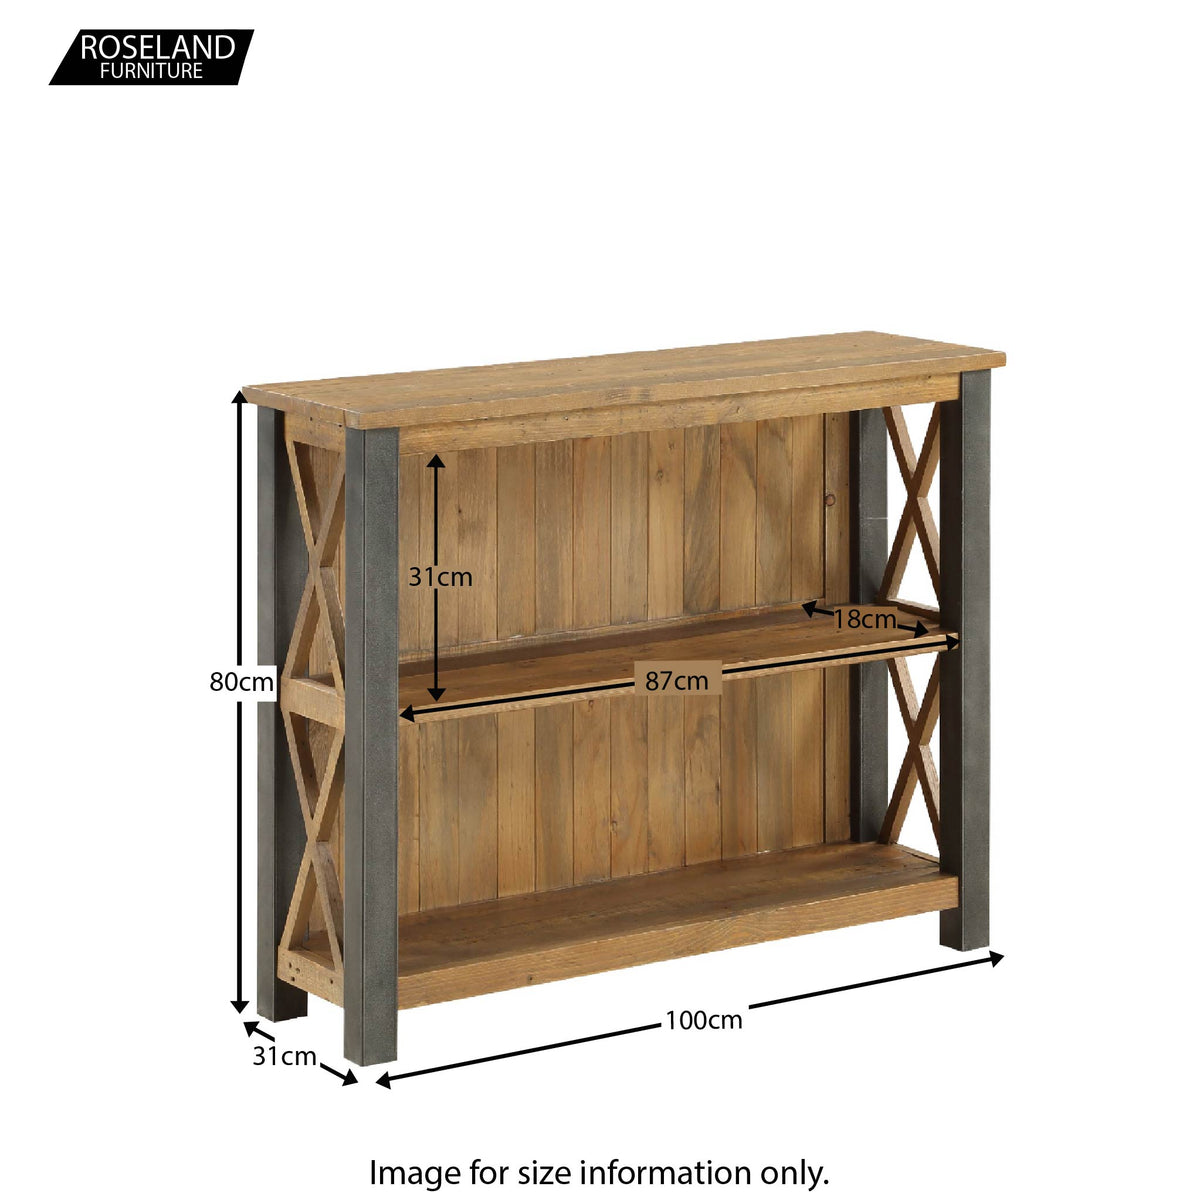 Urban Elegance Reclaimed Wood Low Bookcase - Size Guide